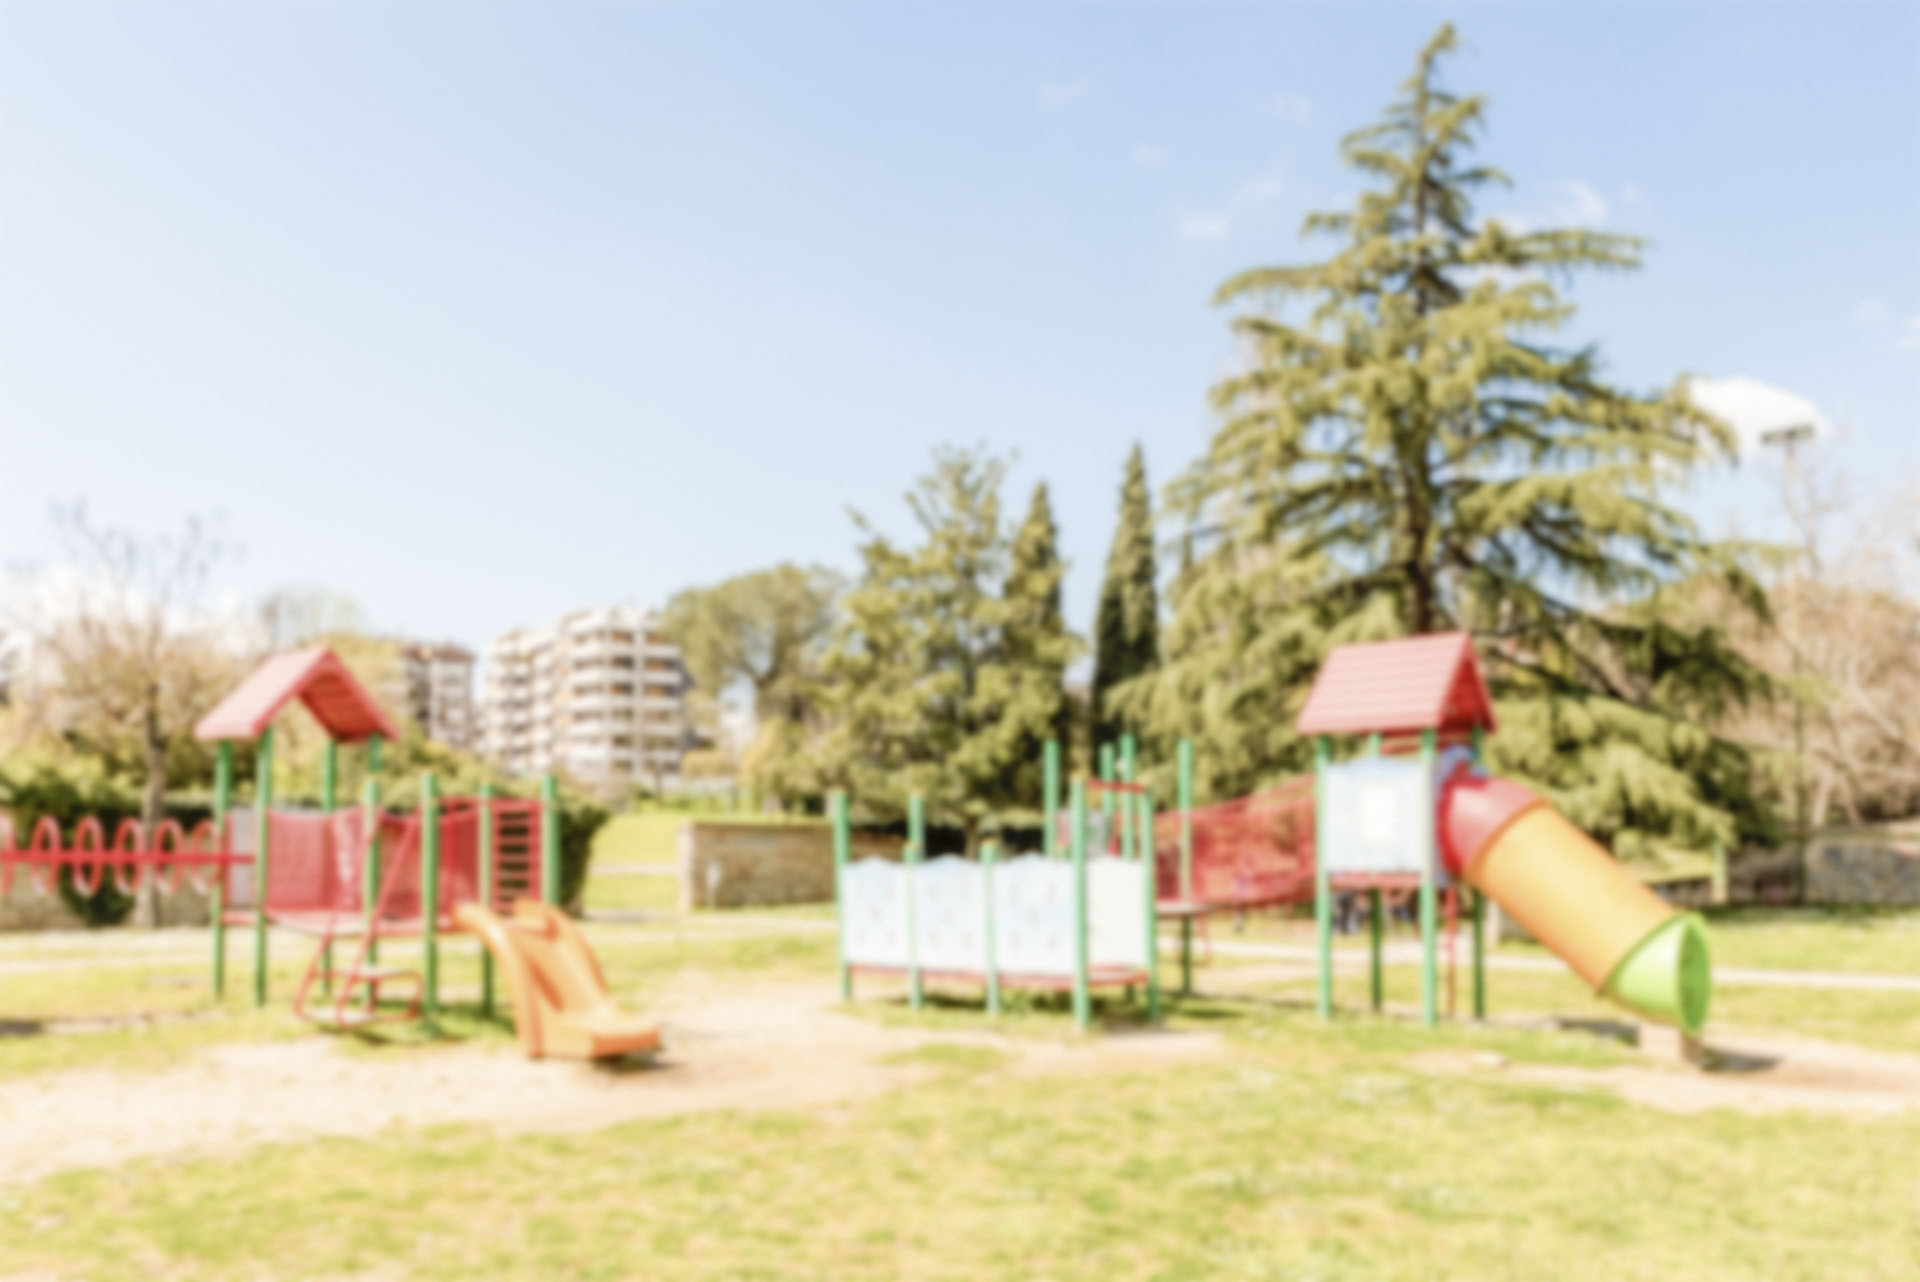 Defocused background of colorful playground for kids in public park